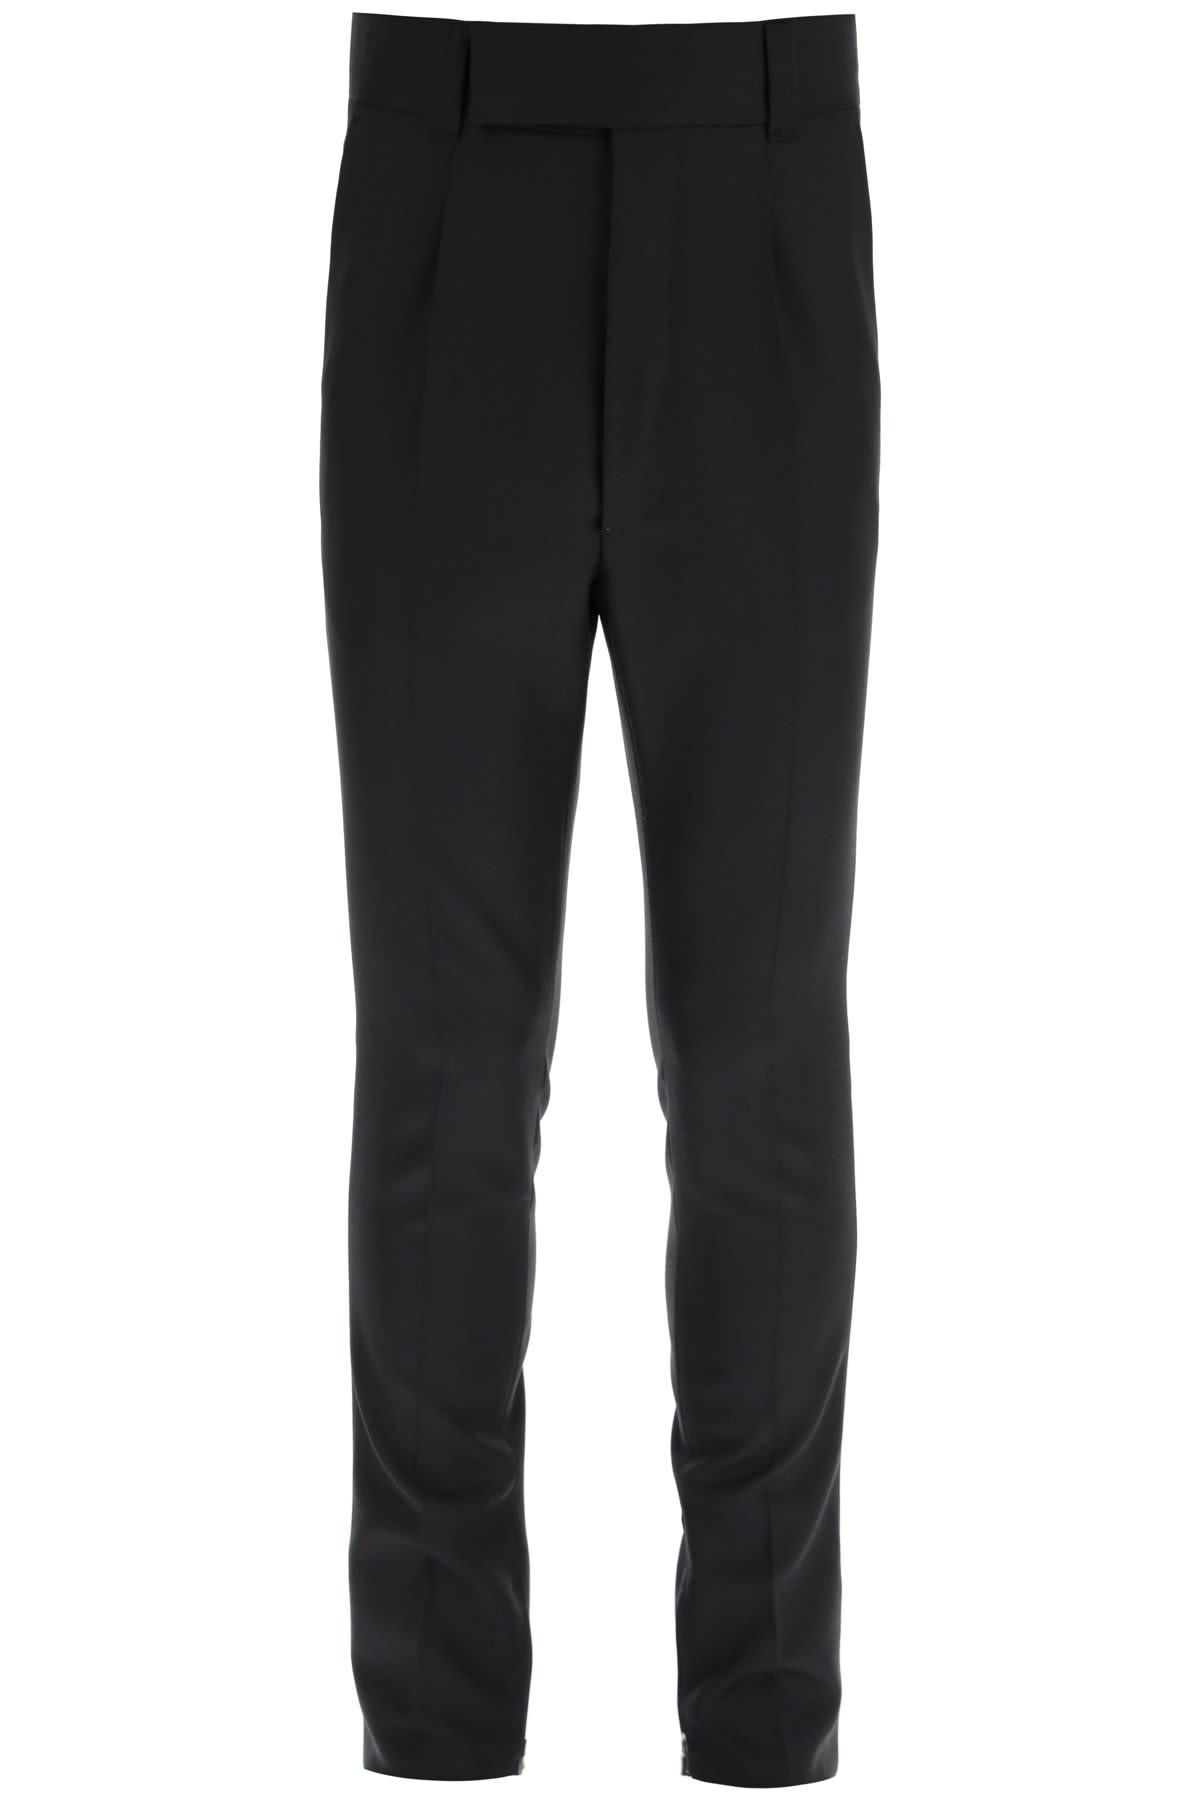 Fearofgodzegna ZEGNA X FEAR OF GOD SLIM TROUSERS